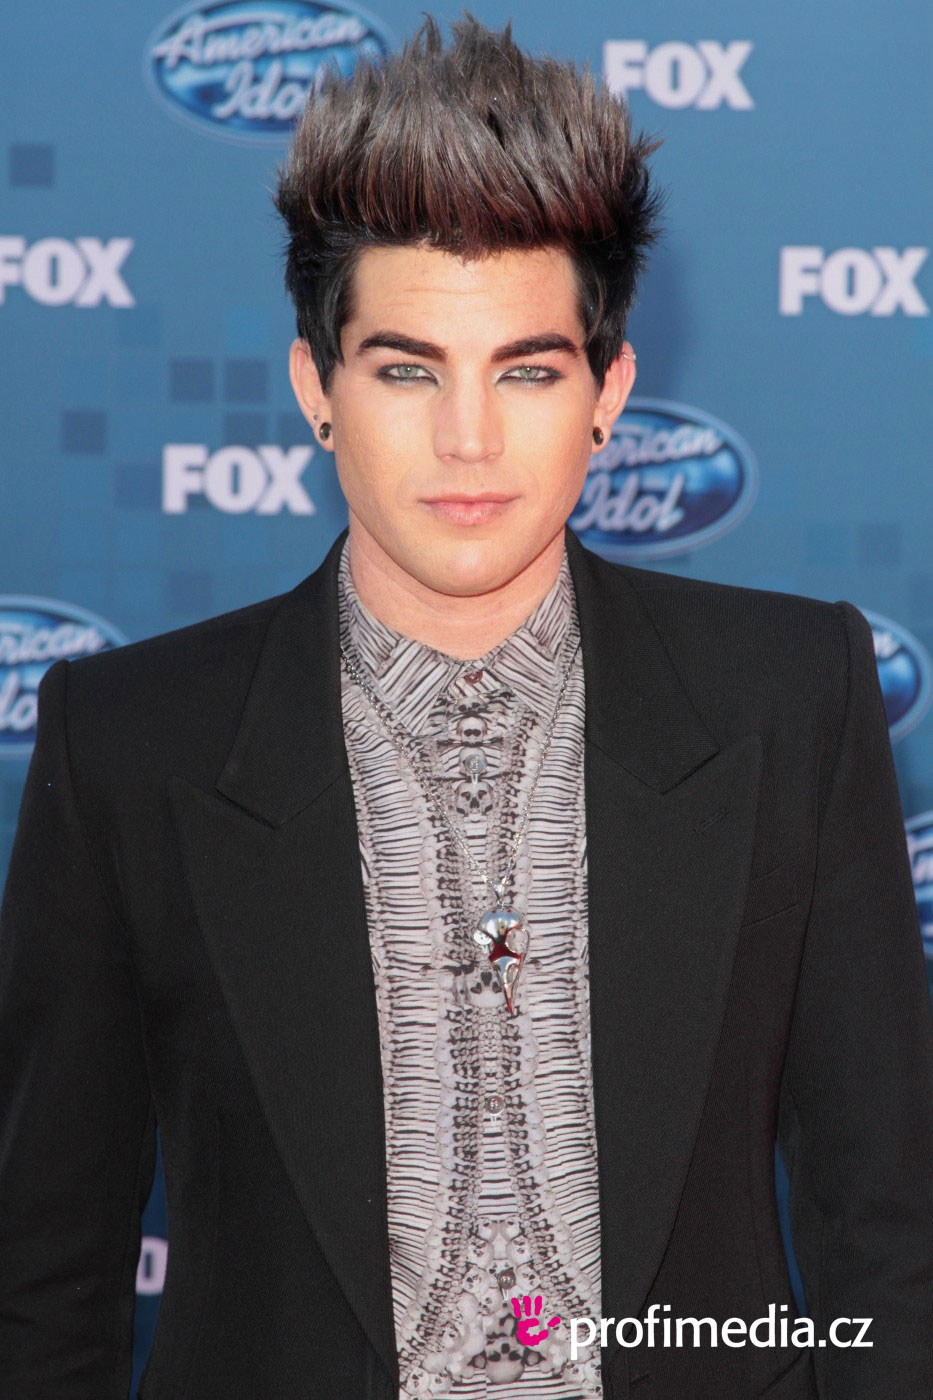 Remarkable Adam Lambert Hairstyle Easyhairstyler Short Hairstyles For Black Women Fulllsitofus